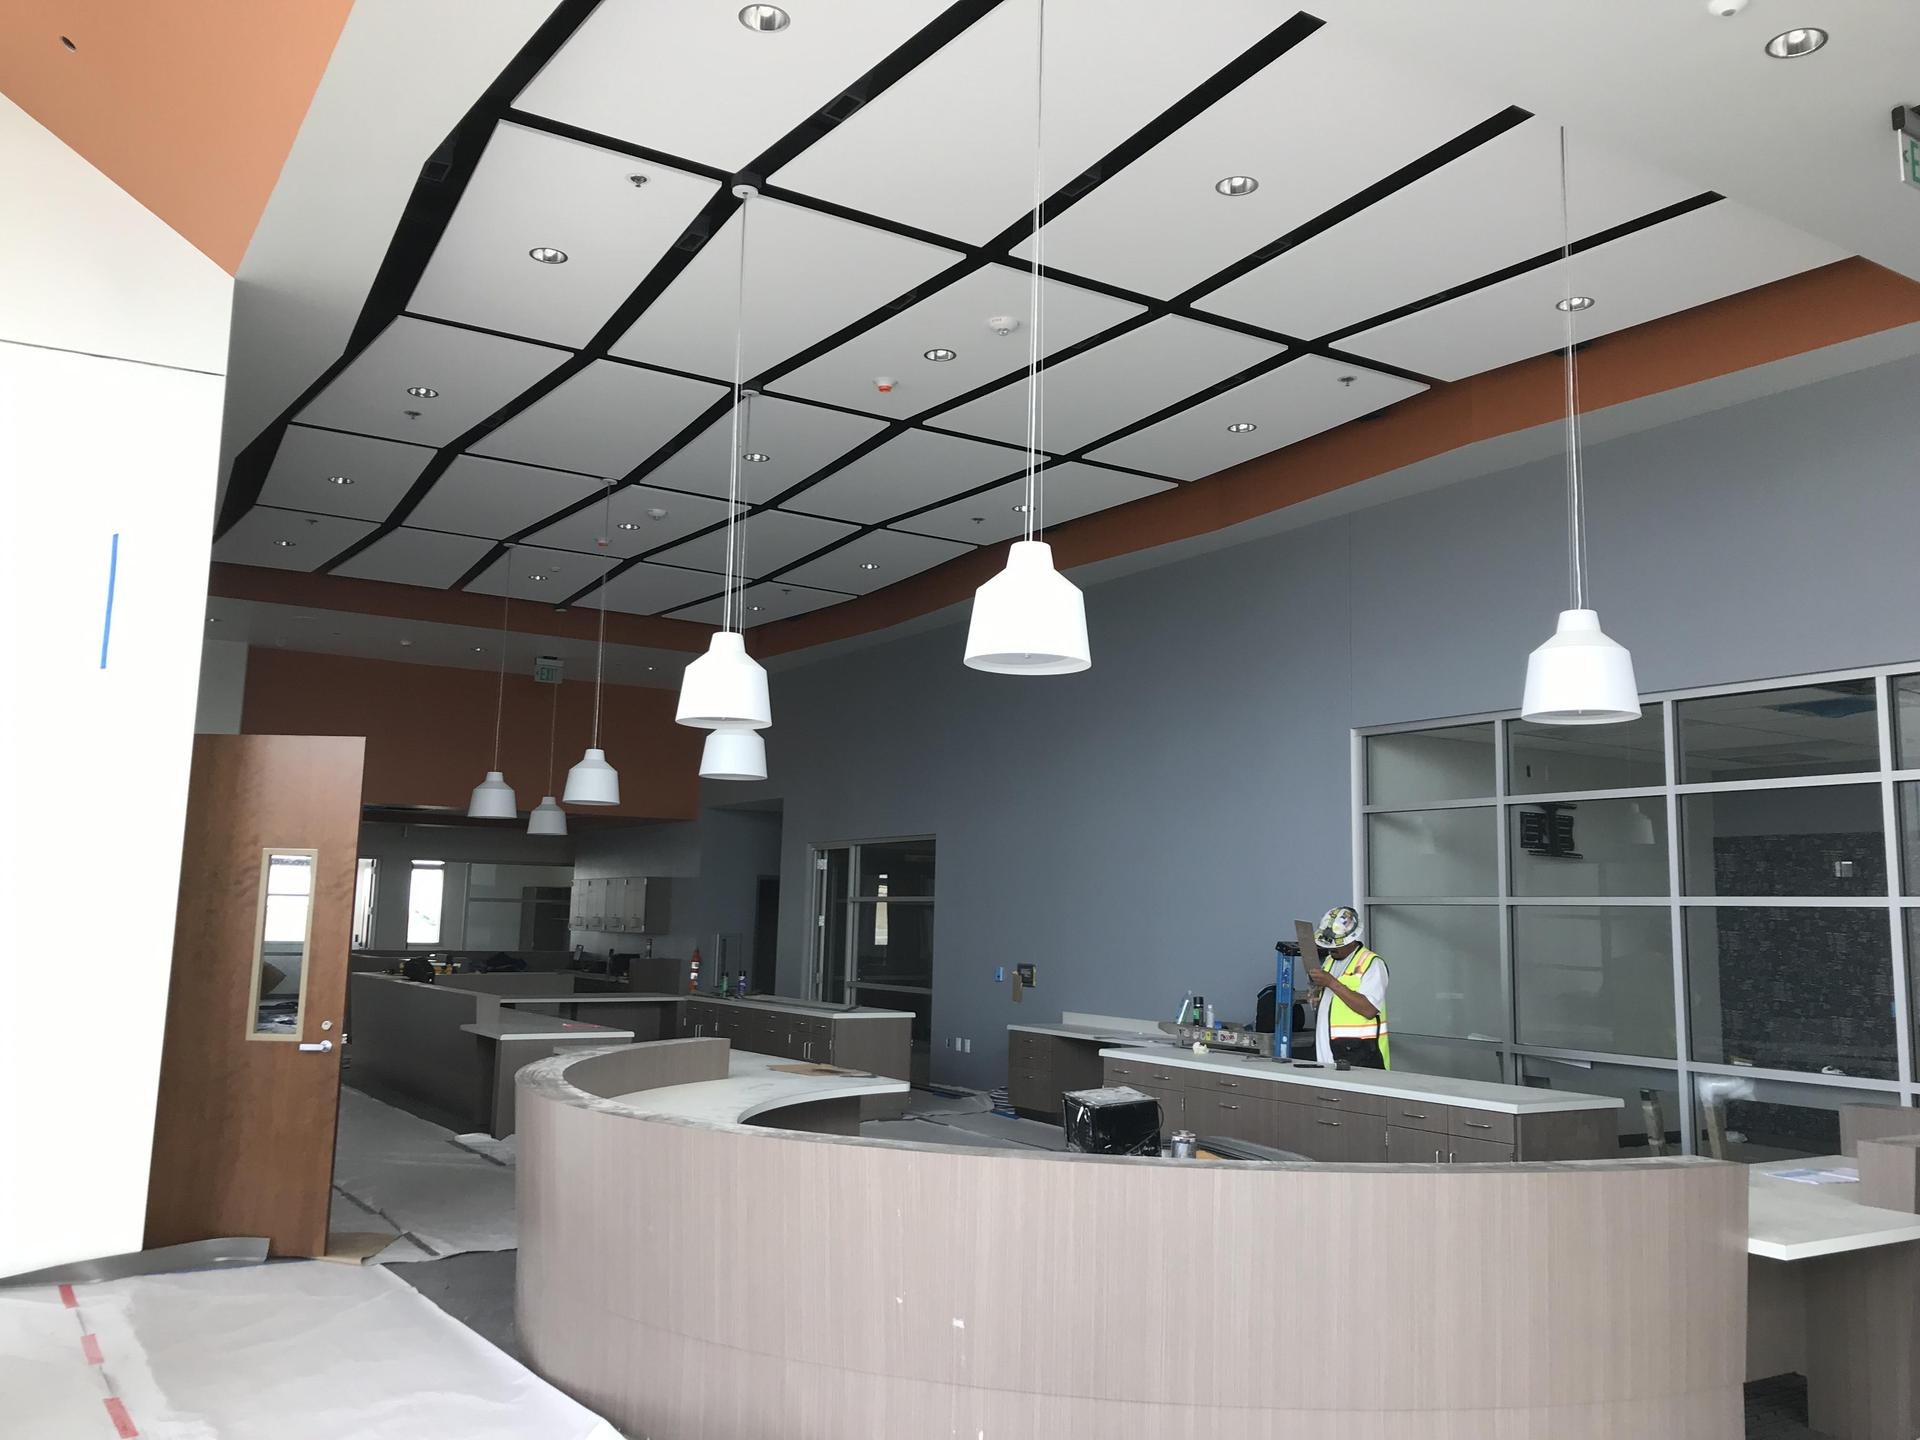 Interior image of Castaic High School office spaces in progress